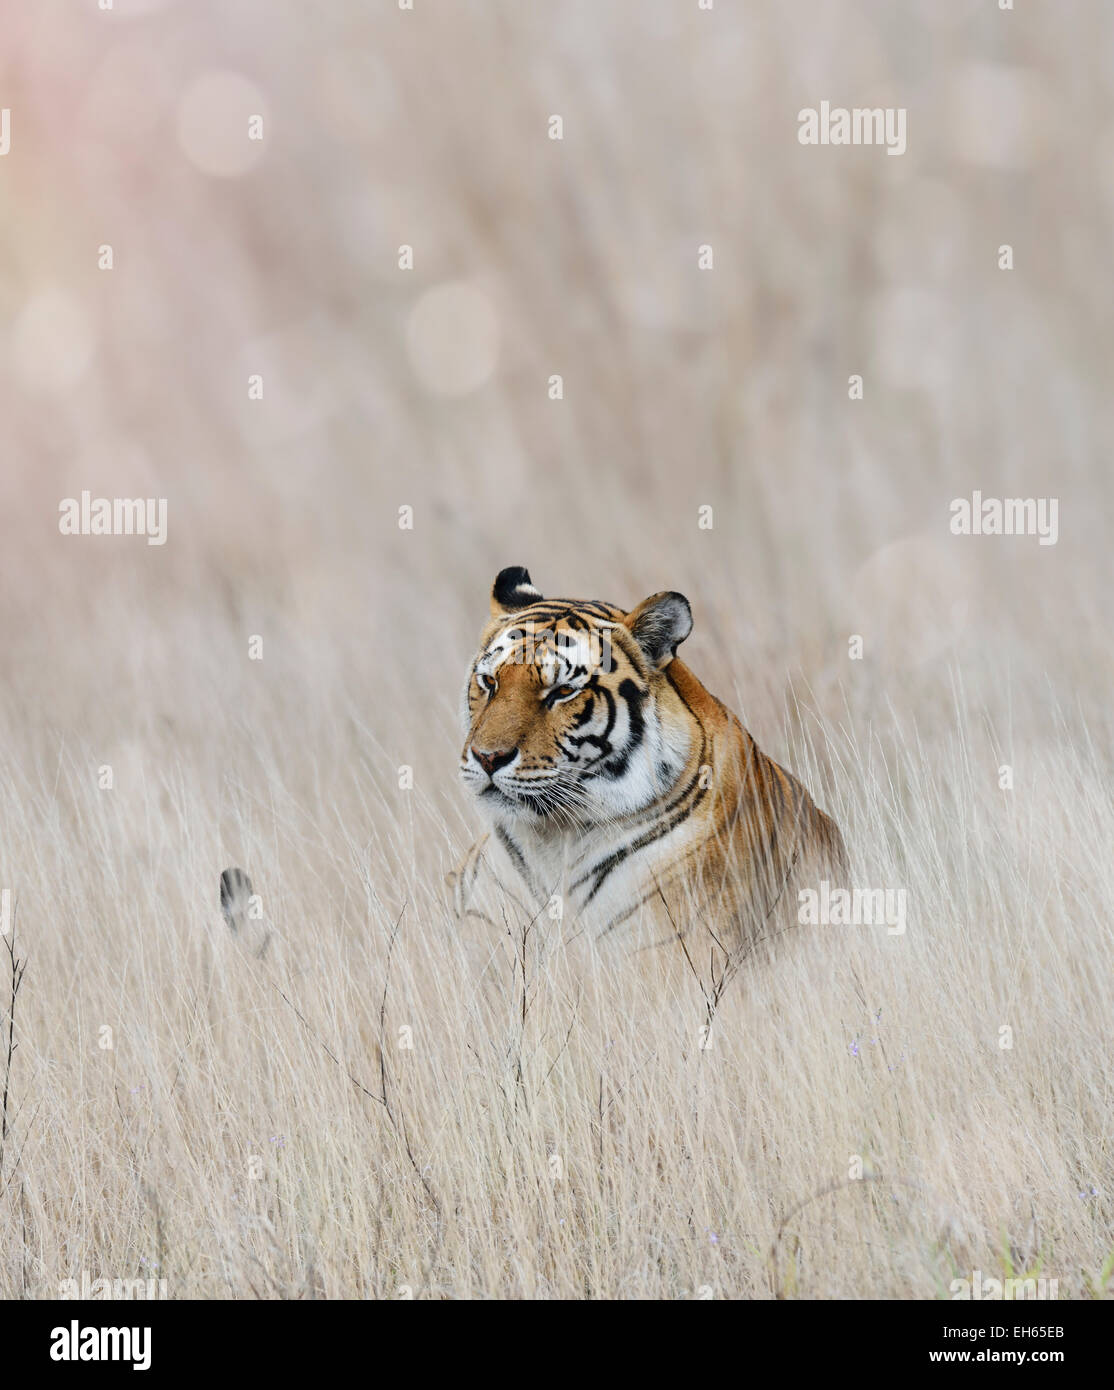 Tiger Resting In The Grass - Stock Image